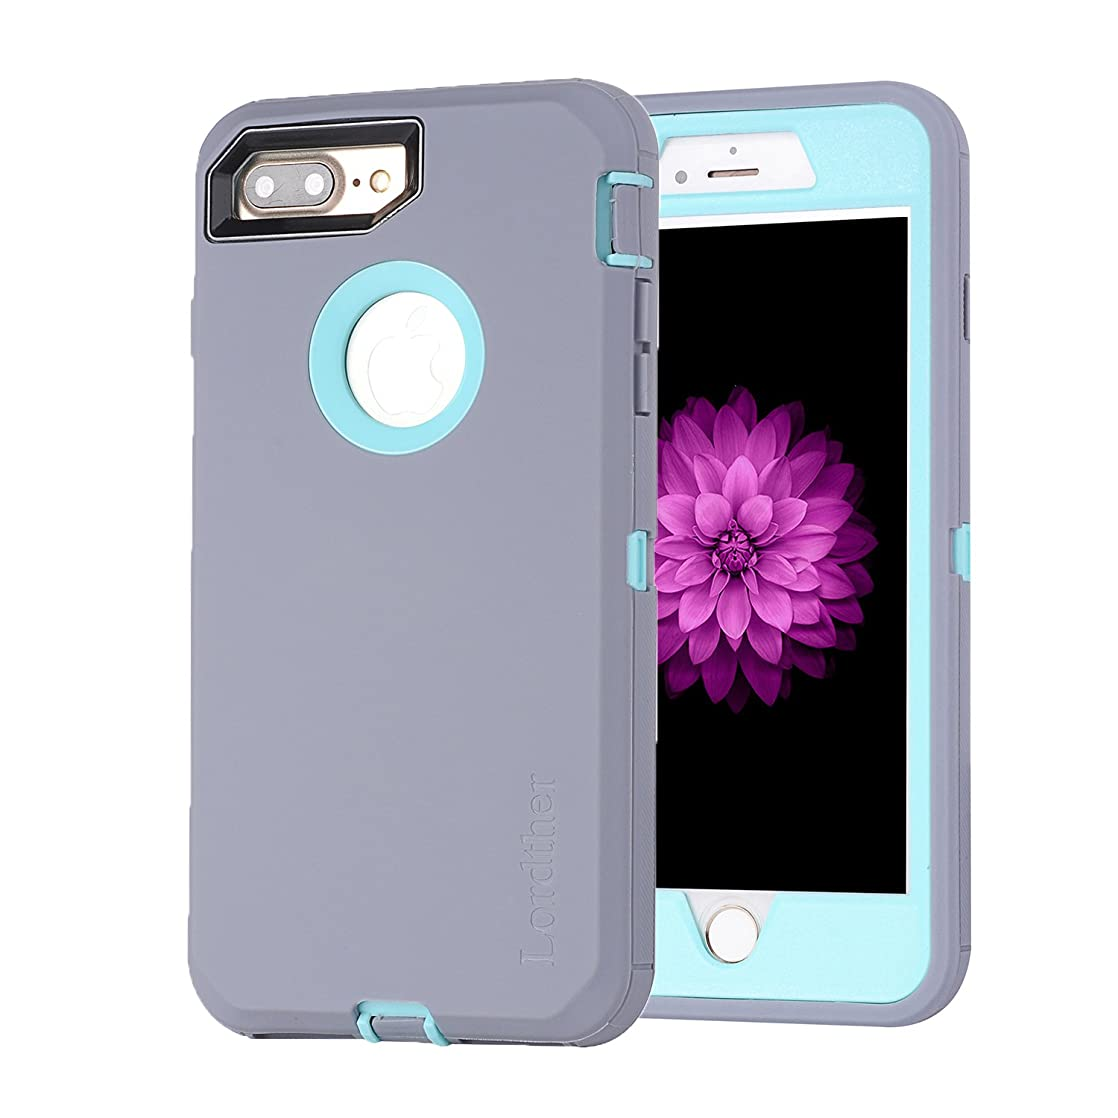 Lordther 5.5-Inch iPhone 8 Plus Case, ShieldOn Series [Military Grade] [Heavy Duty] Synthetic Rubber TPU Case Covers with [Bonus Screen Protector] for iPhone 7 Plus&iPhone 8 Plus (Grey/Blue) dobhqltm09467